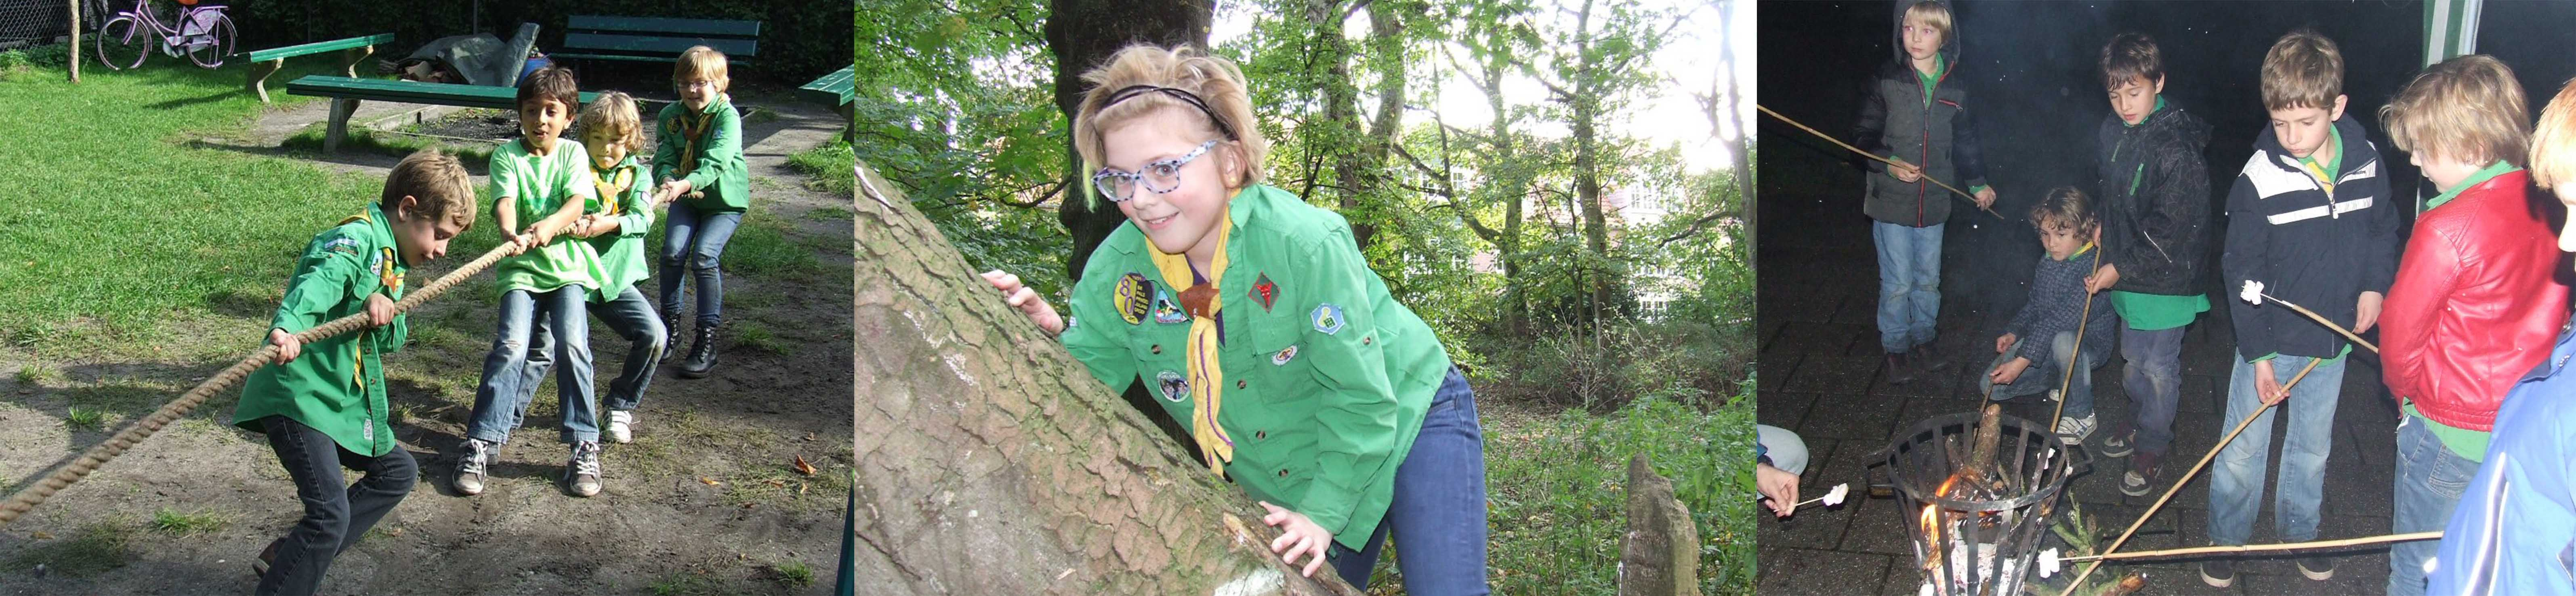 Scoutinggroep Be Pals Prinses Juliana